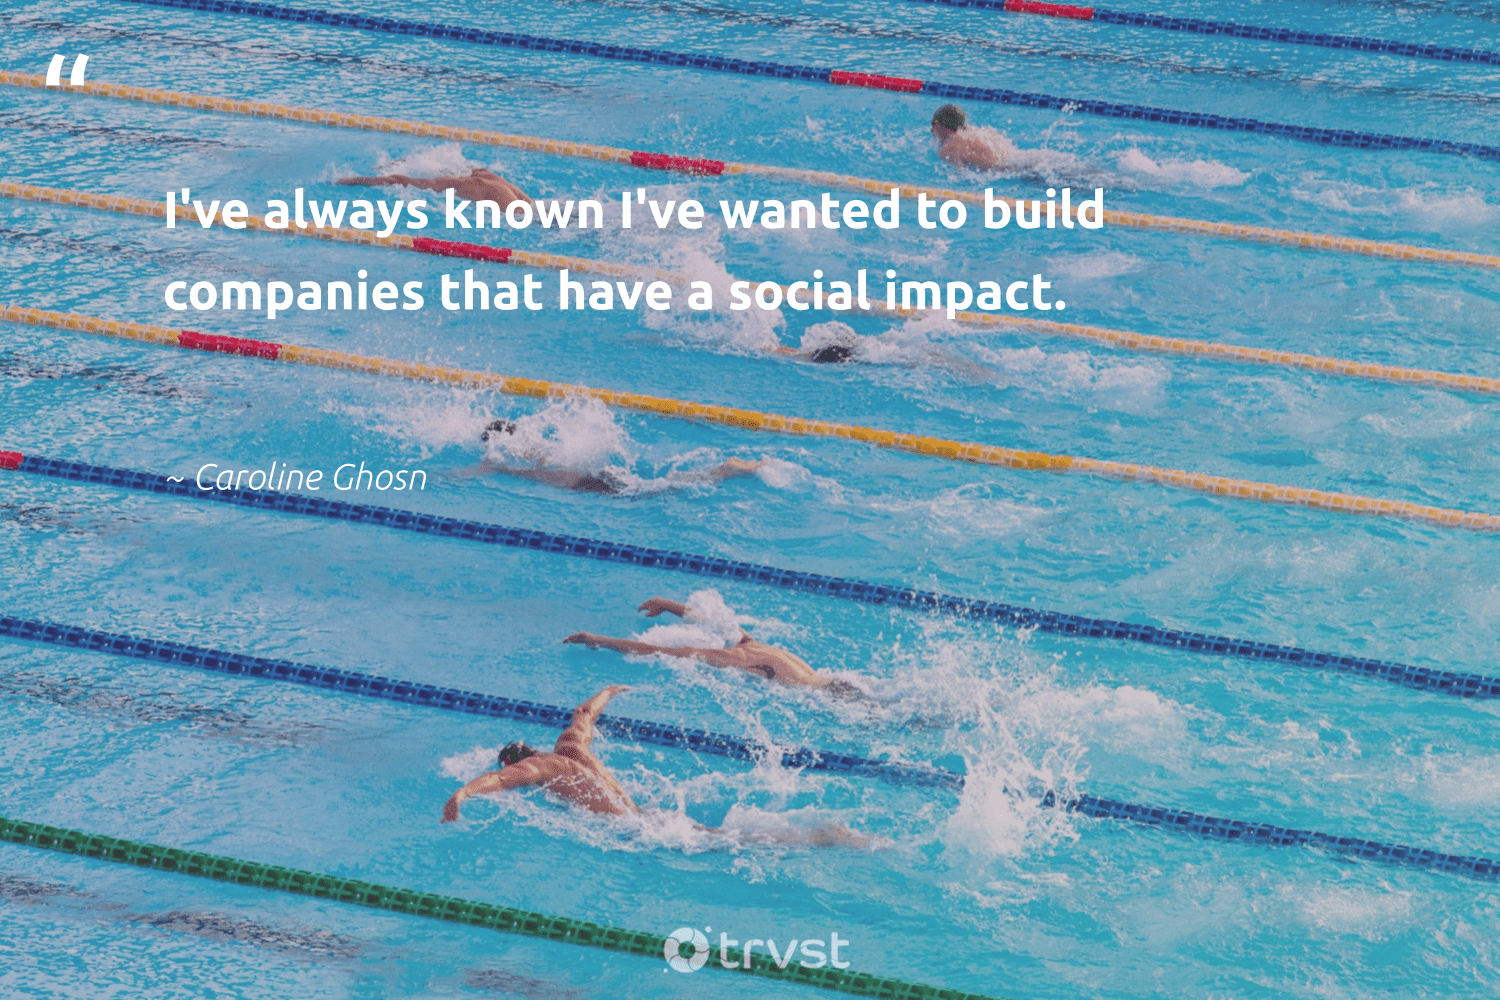 """I've always known I've wanted to build companies that have a social impact.""  - Caroline Ghosn #trvst #quotes #socialenterprise #impact #socialimpact #ethicalbusiness #weareallone #ecoconscious #socent #socialchange #makeadifference #planetearthfirst"